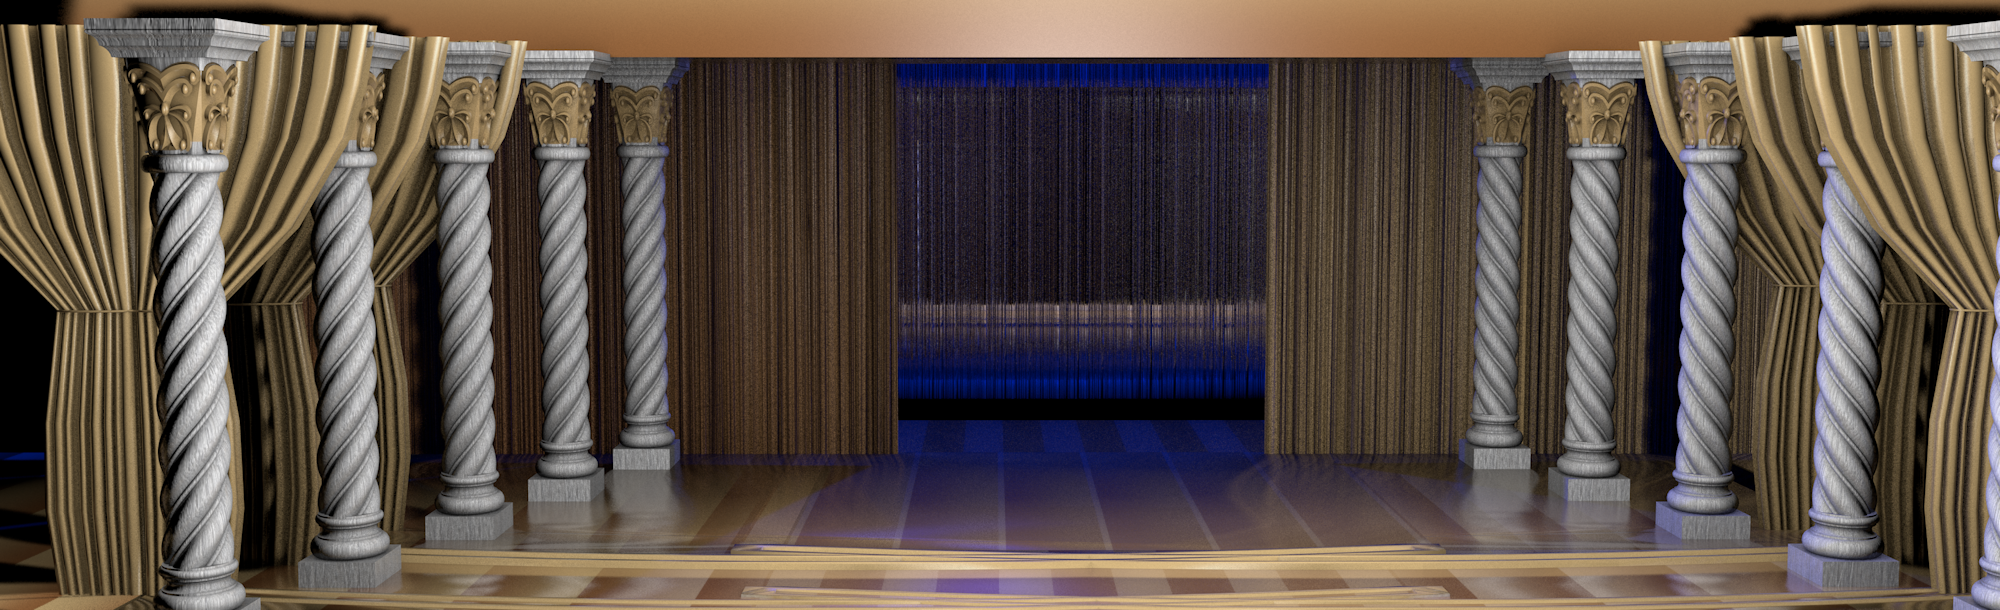 stage_Liberace2.png